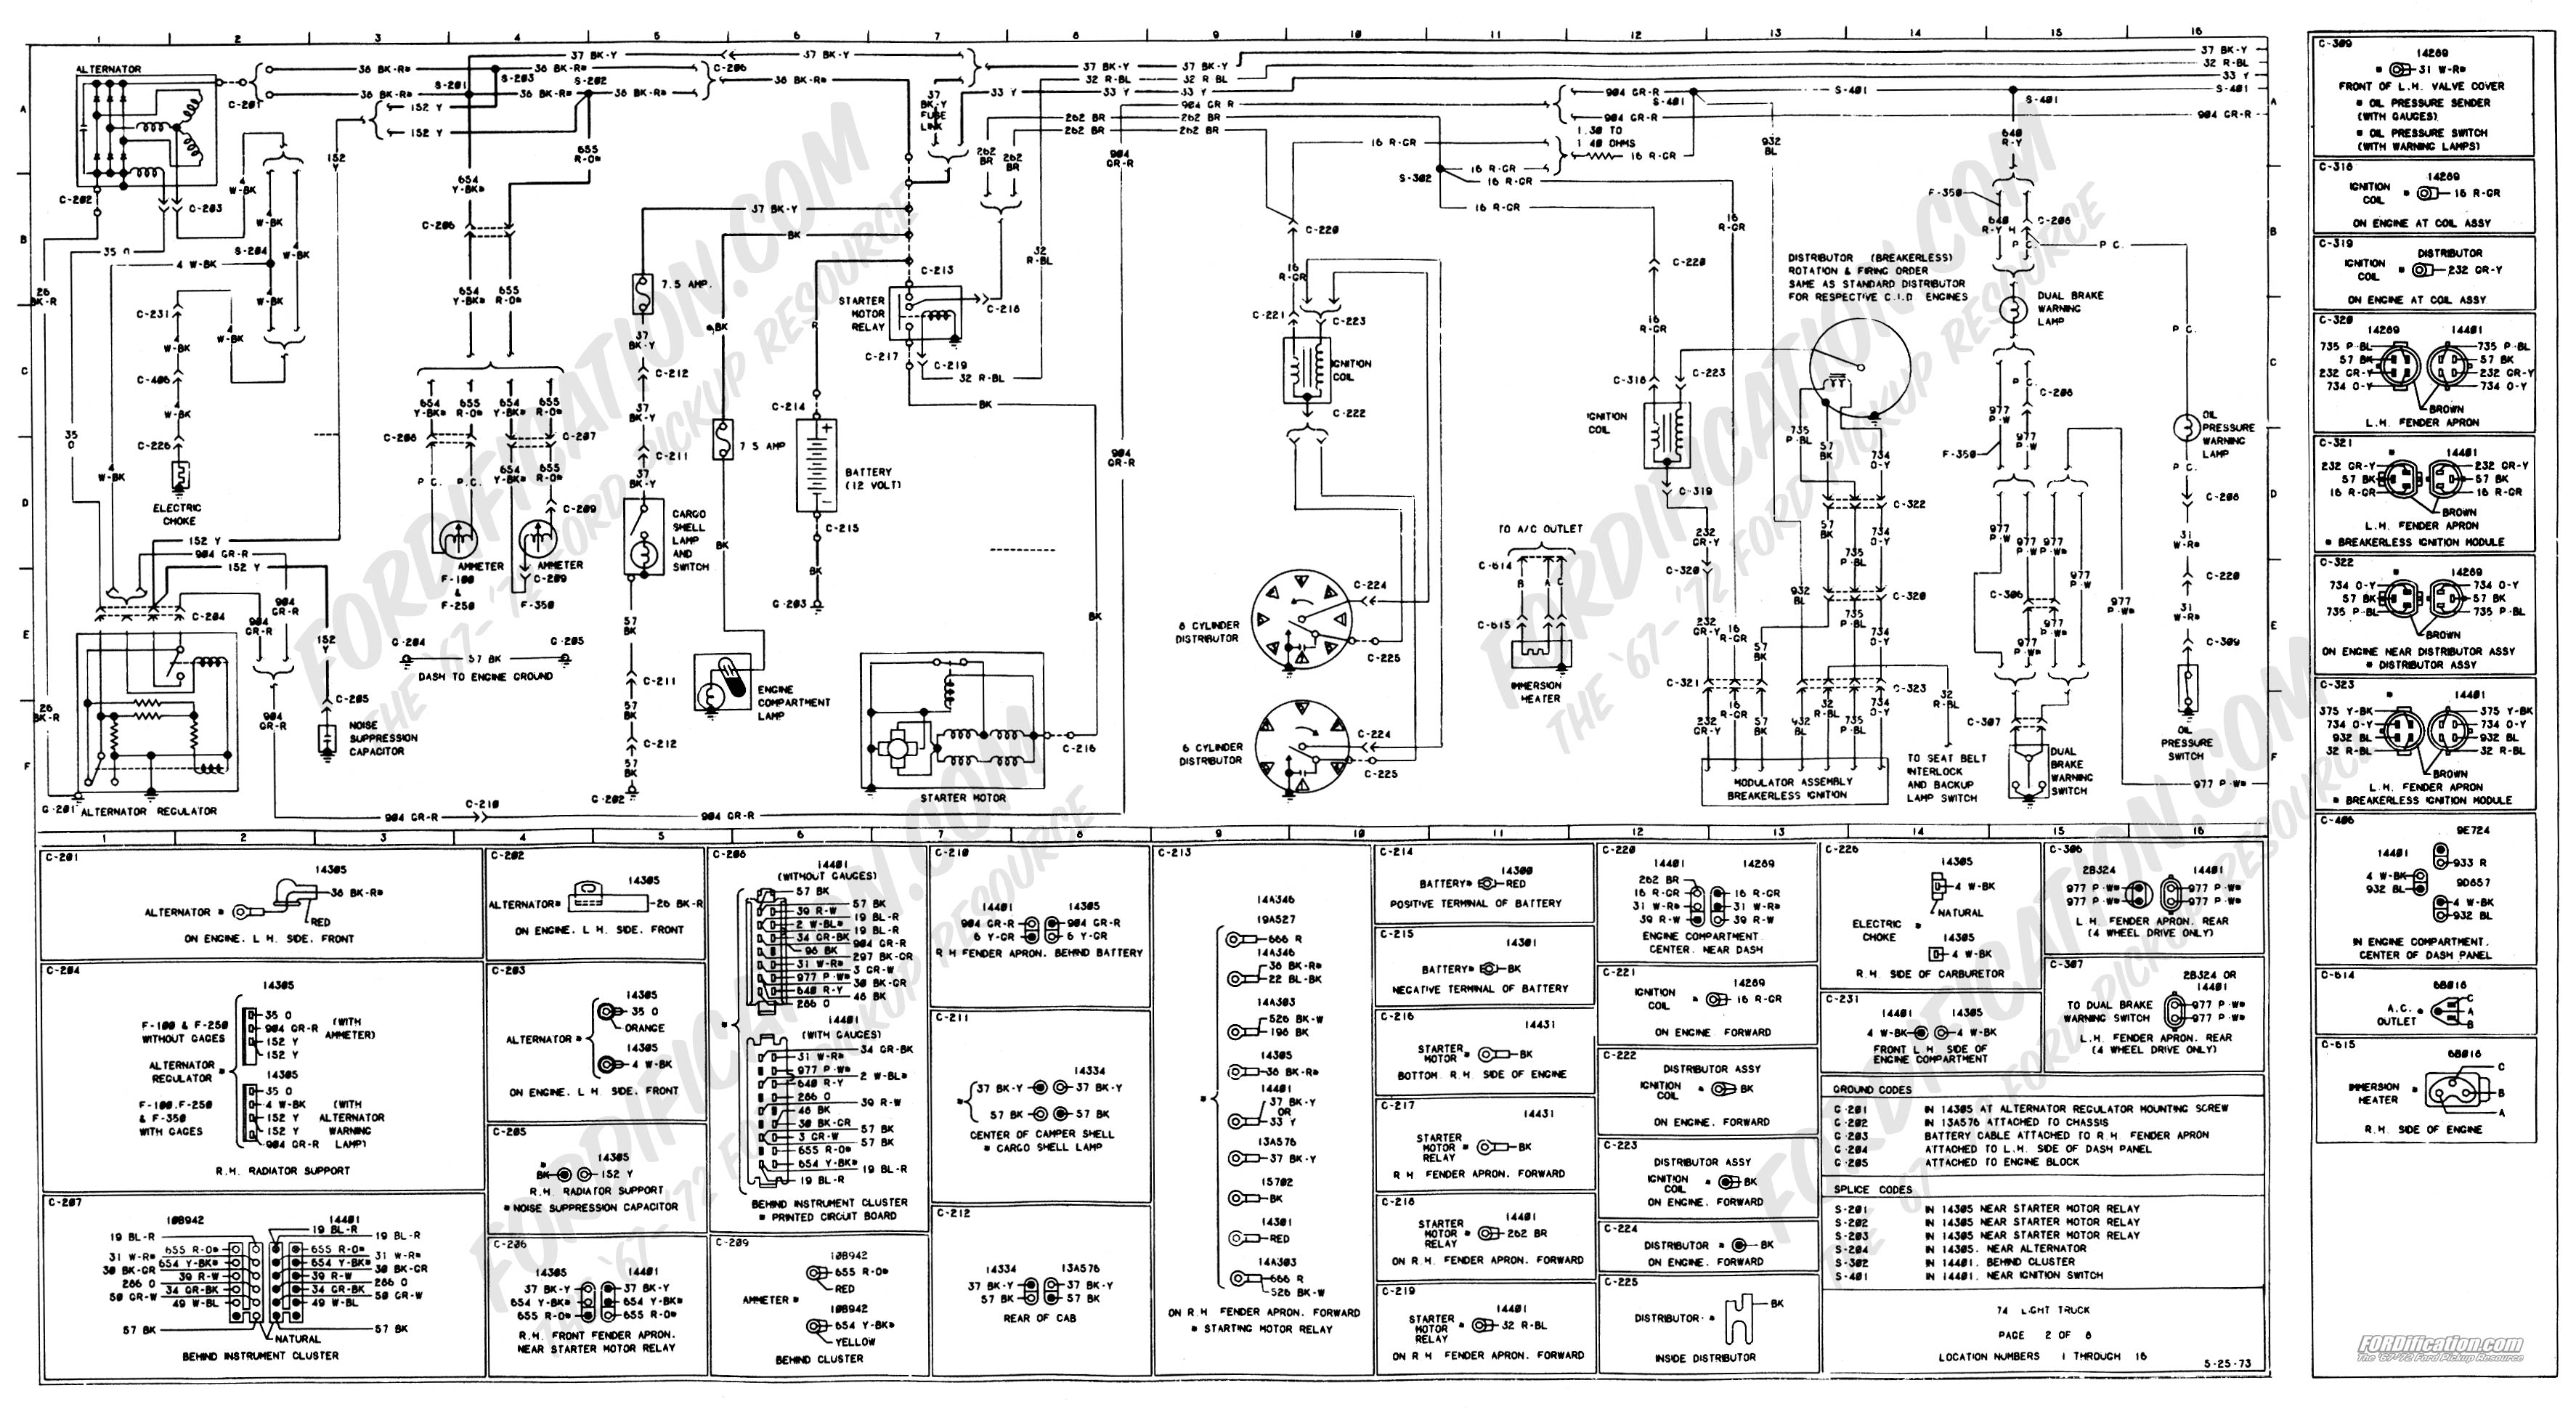 wiring diagram for 1999 ford sterling wiring diagram inside 1999 sterling truck wiring diagram guide about wiring diagram sterling wiring diagram wiring diagram forward 1999